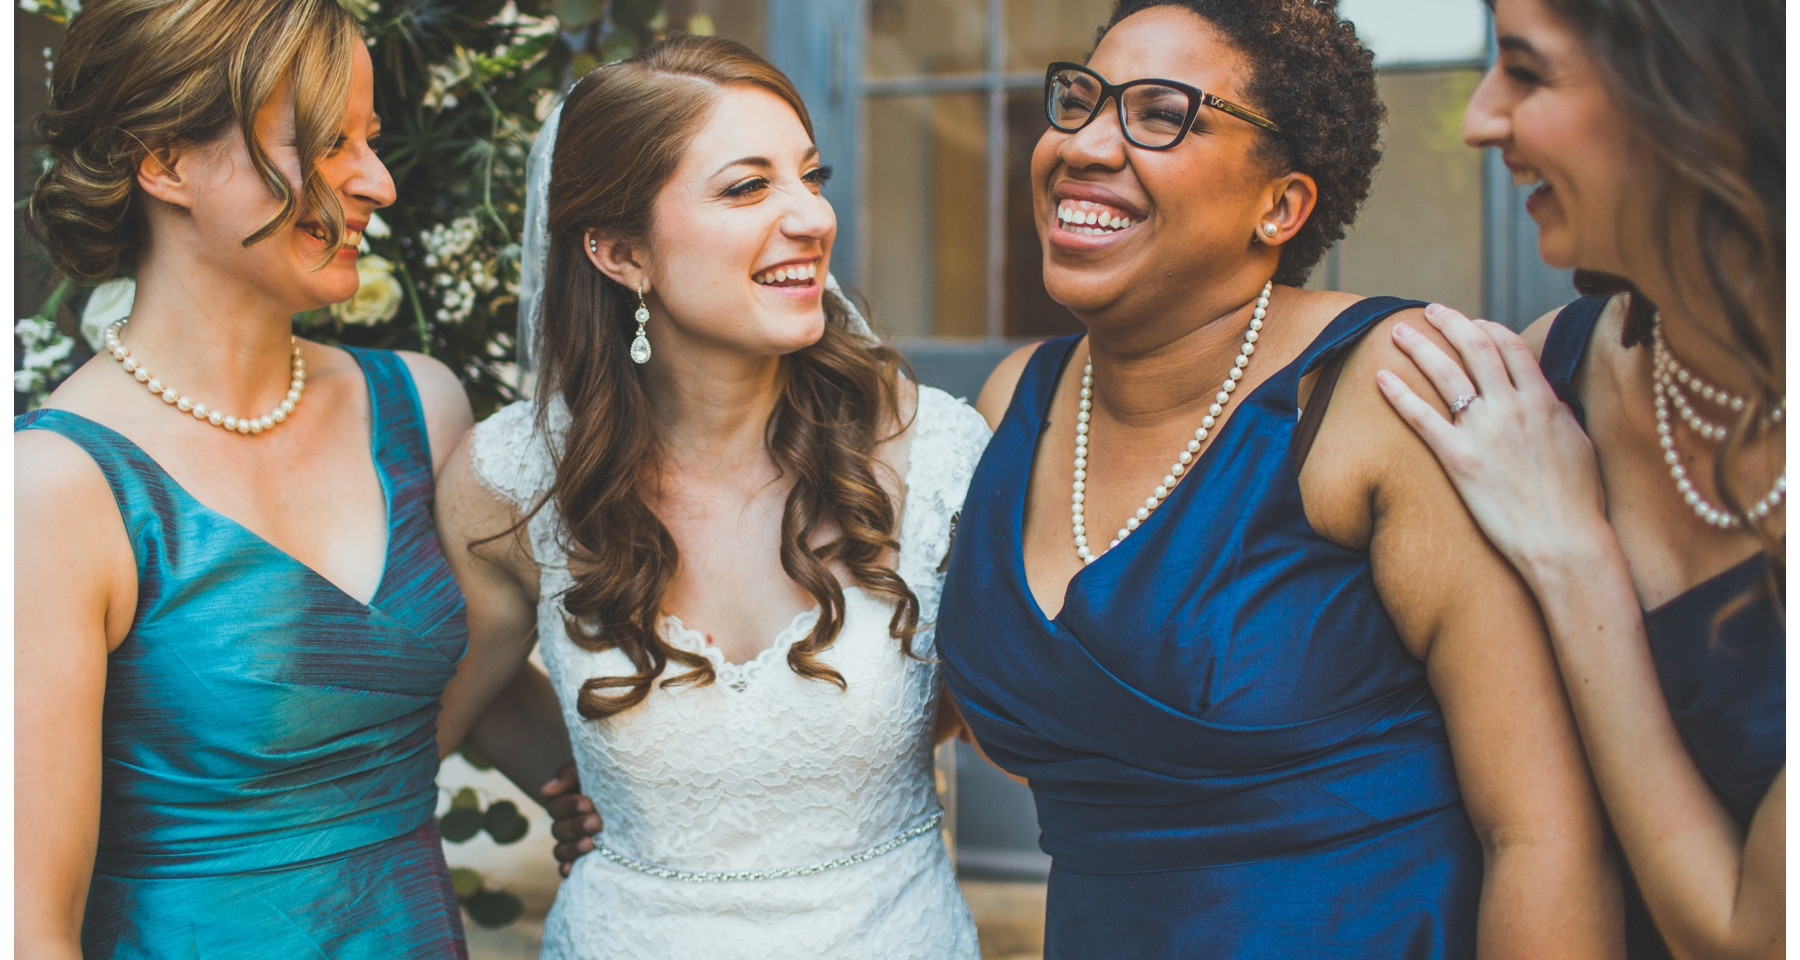 New Orleans Bridal Party makeup and hair